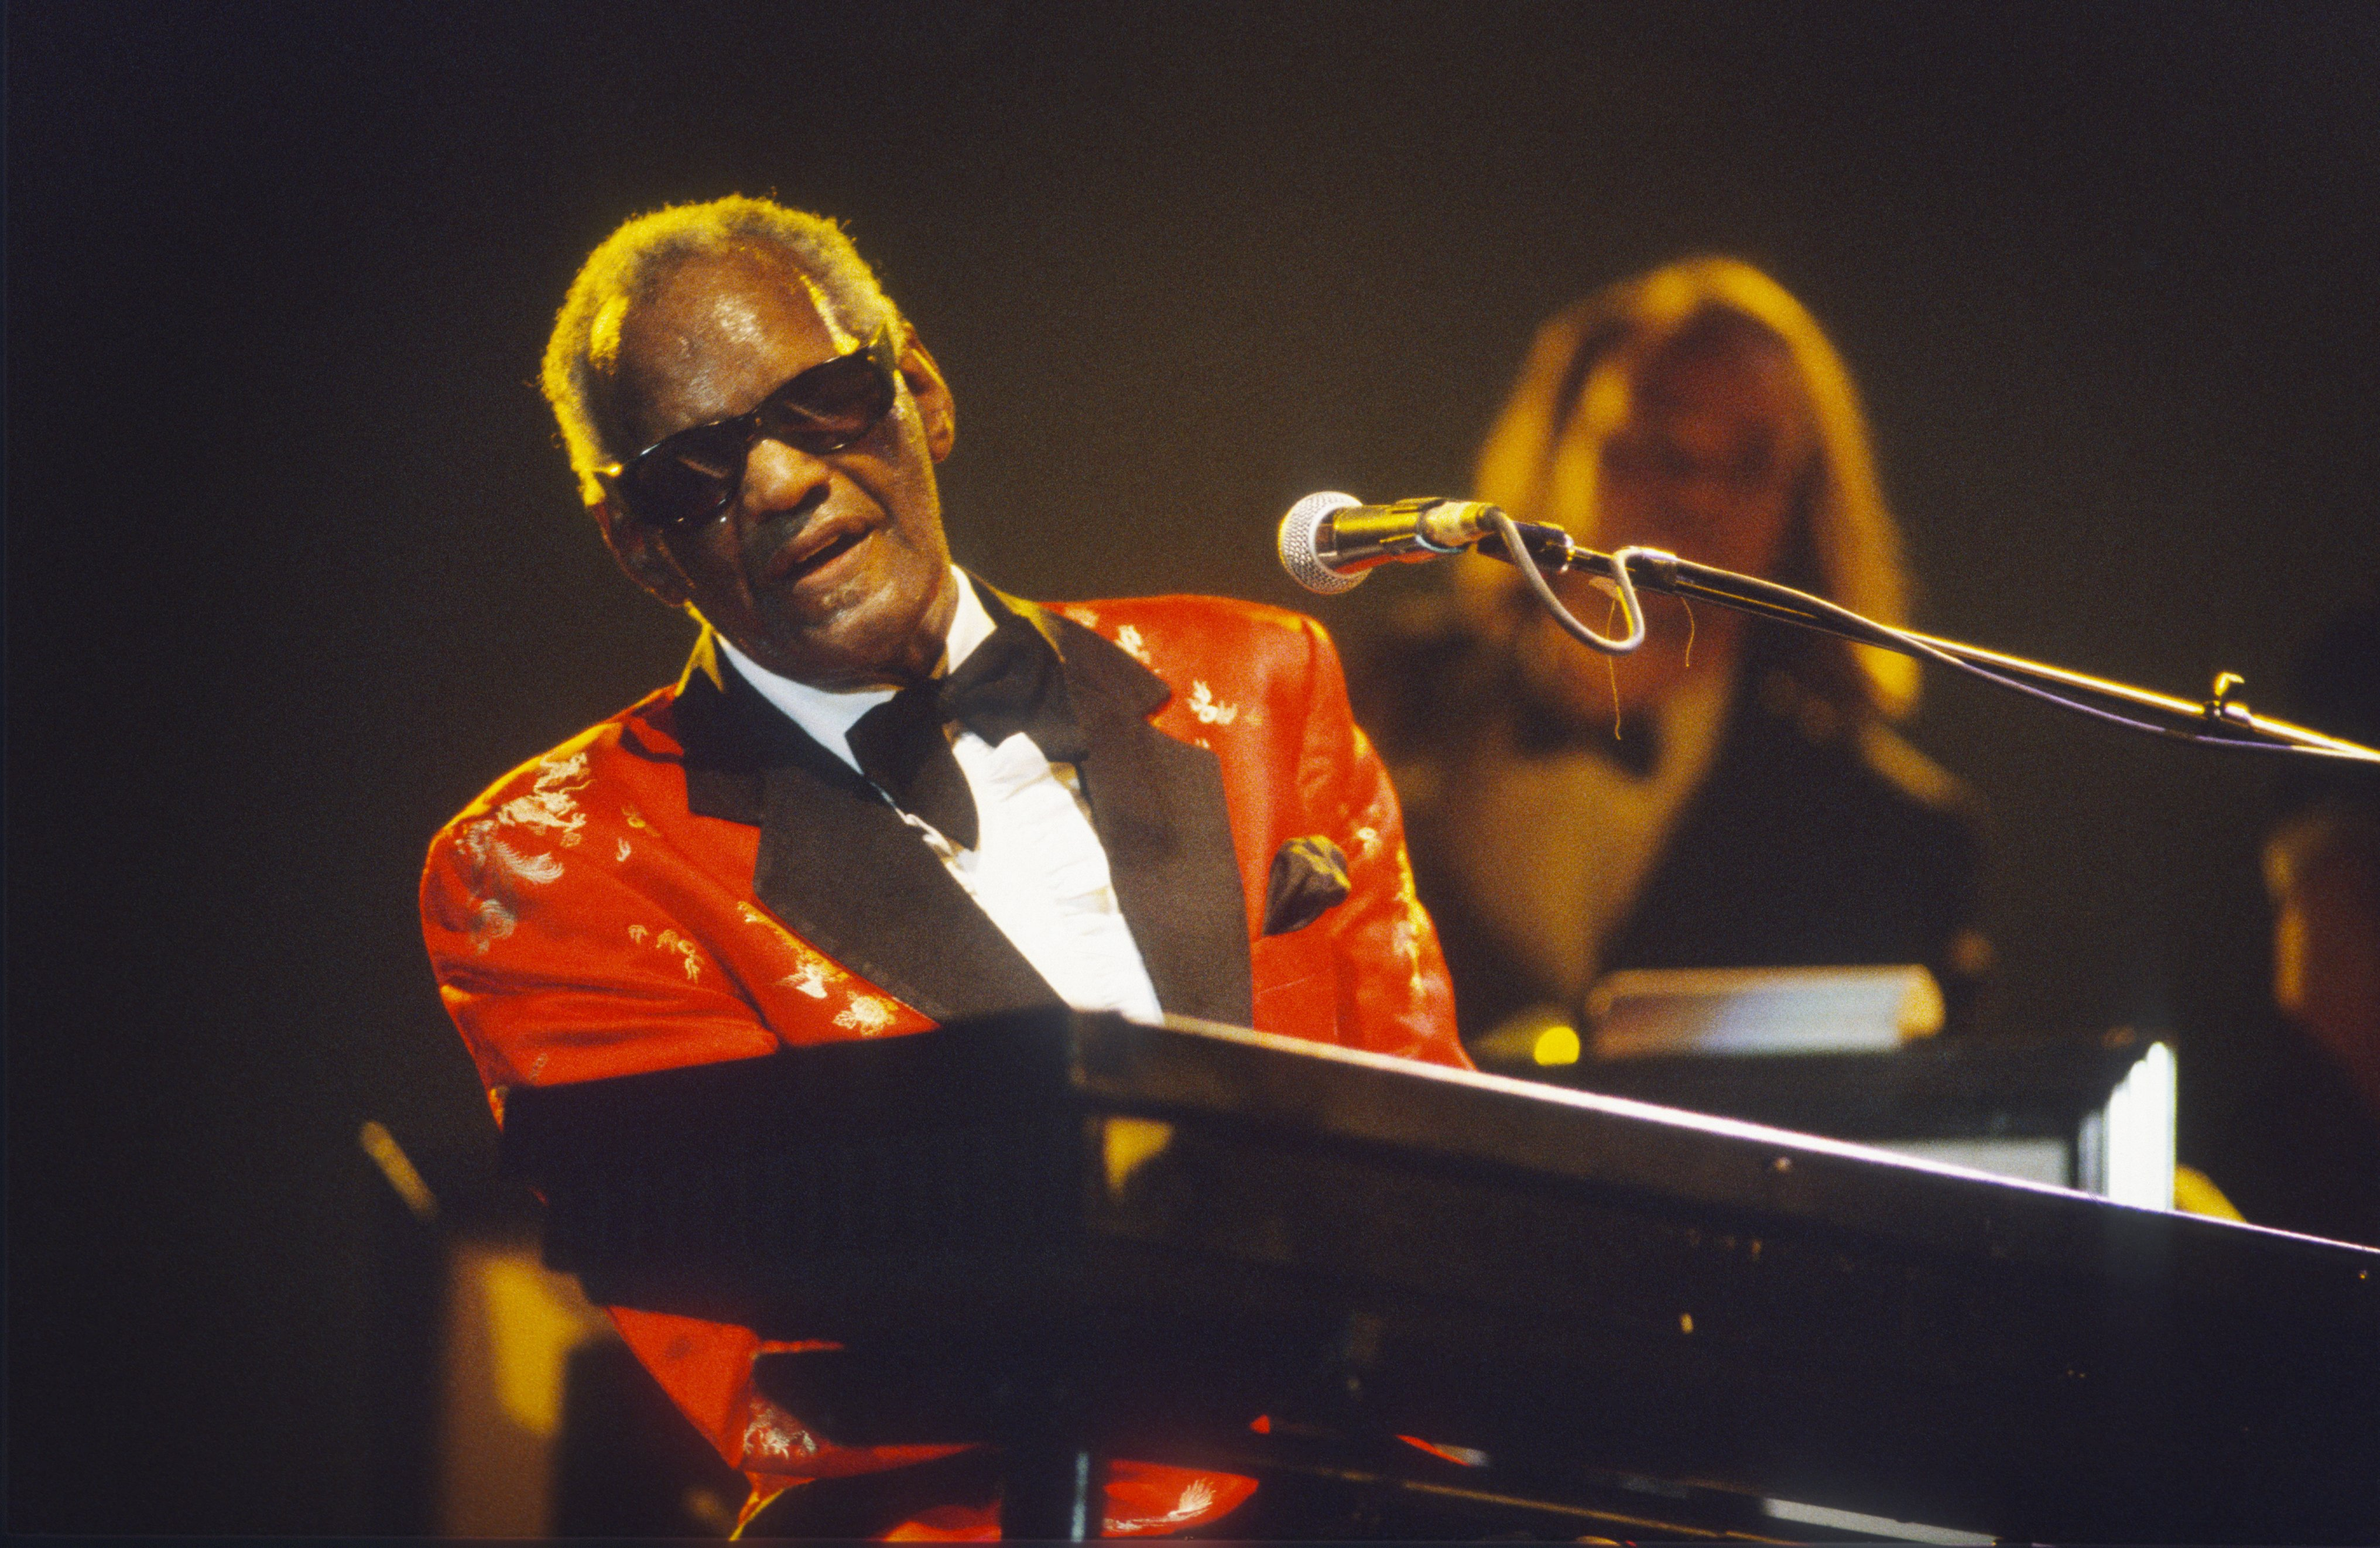 Ray Charles, Rhythm 'n' Blues Festival, Peer, Belgium, 07/1994 | Photo: GettyImages